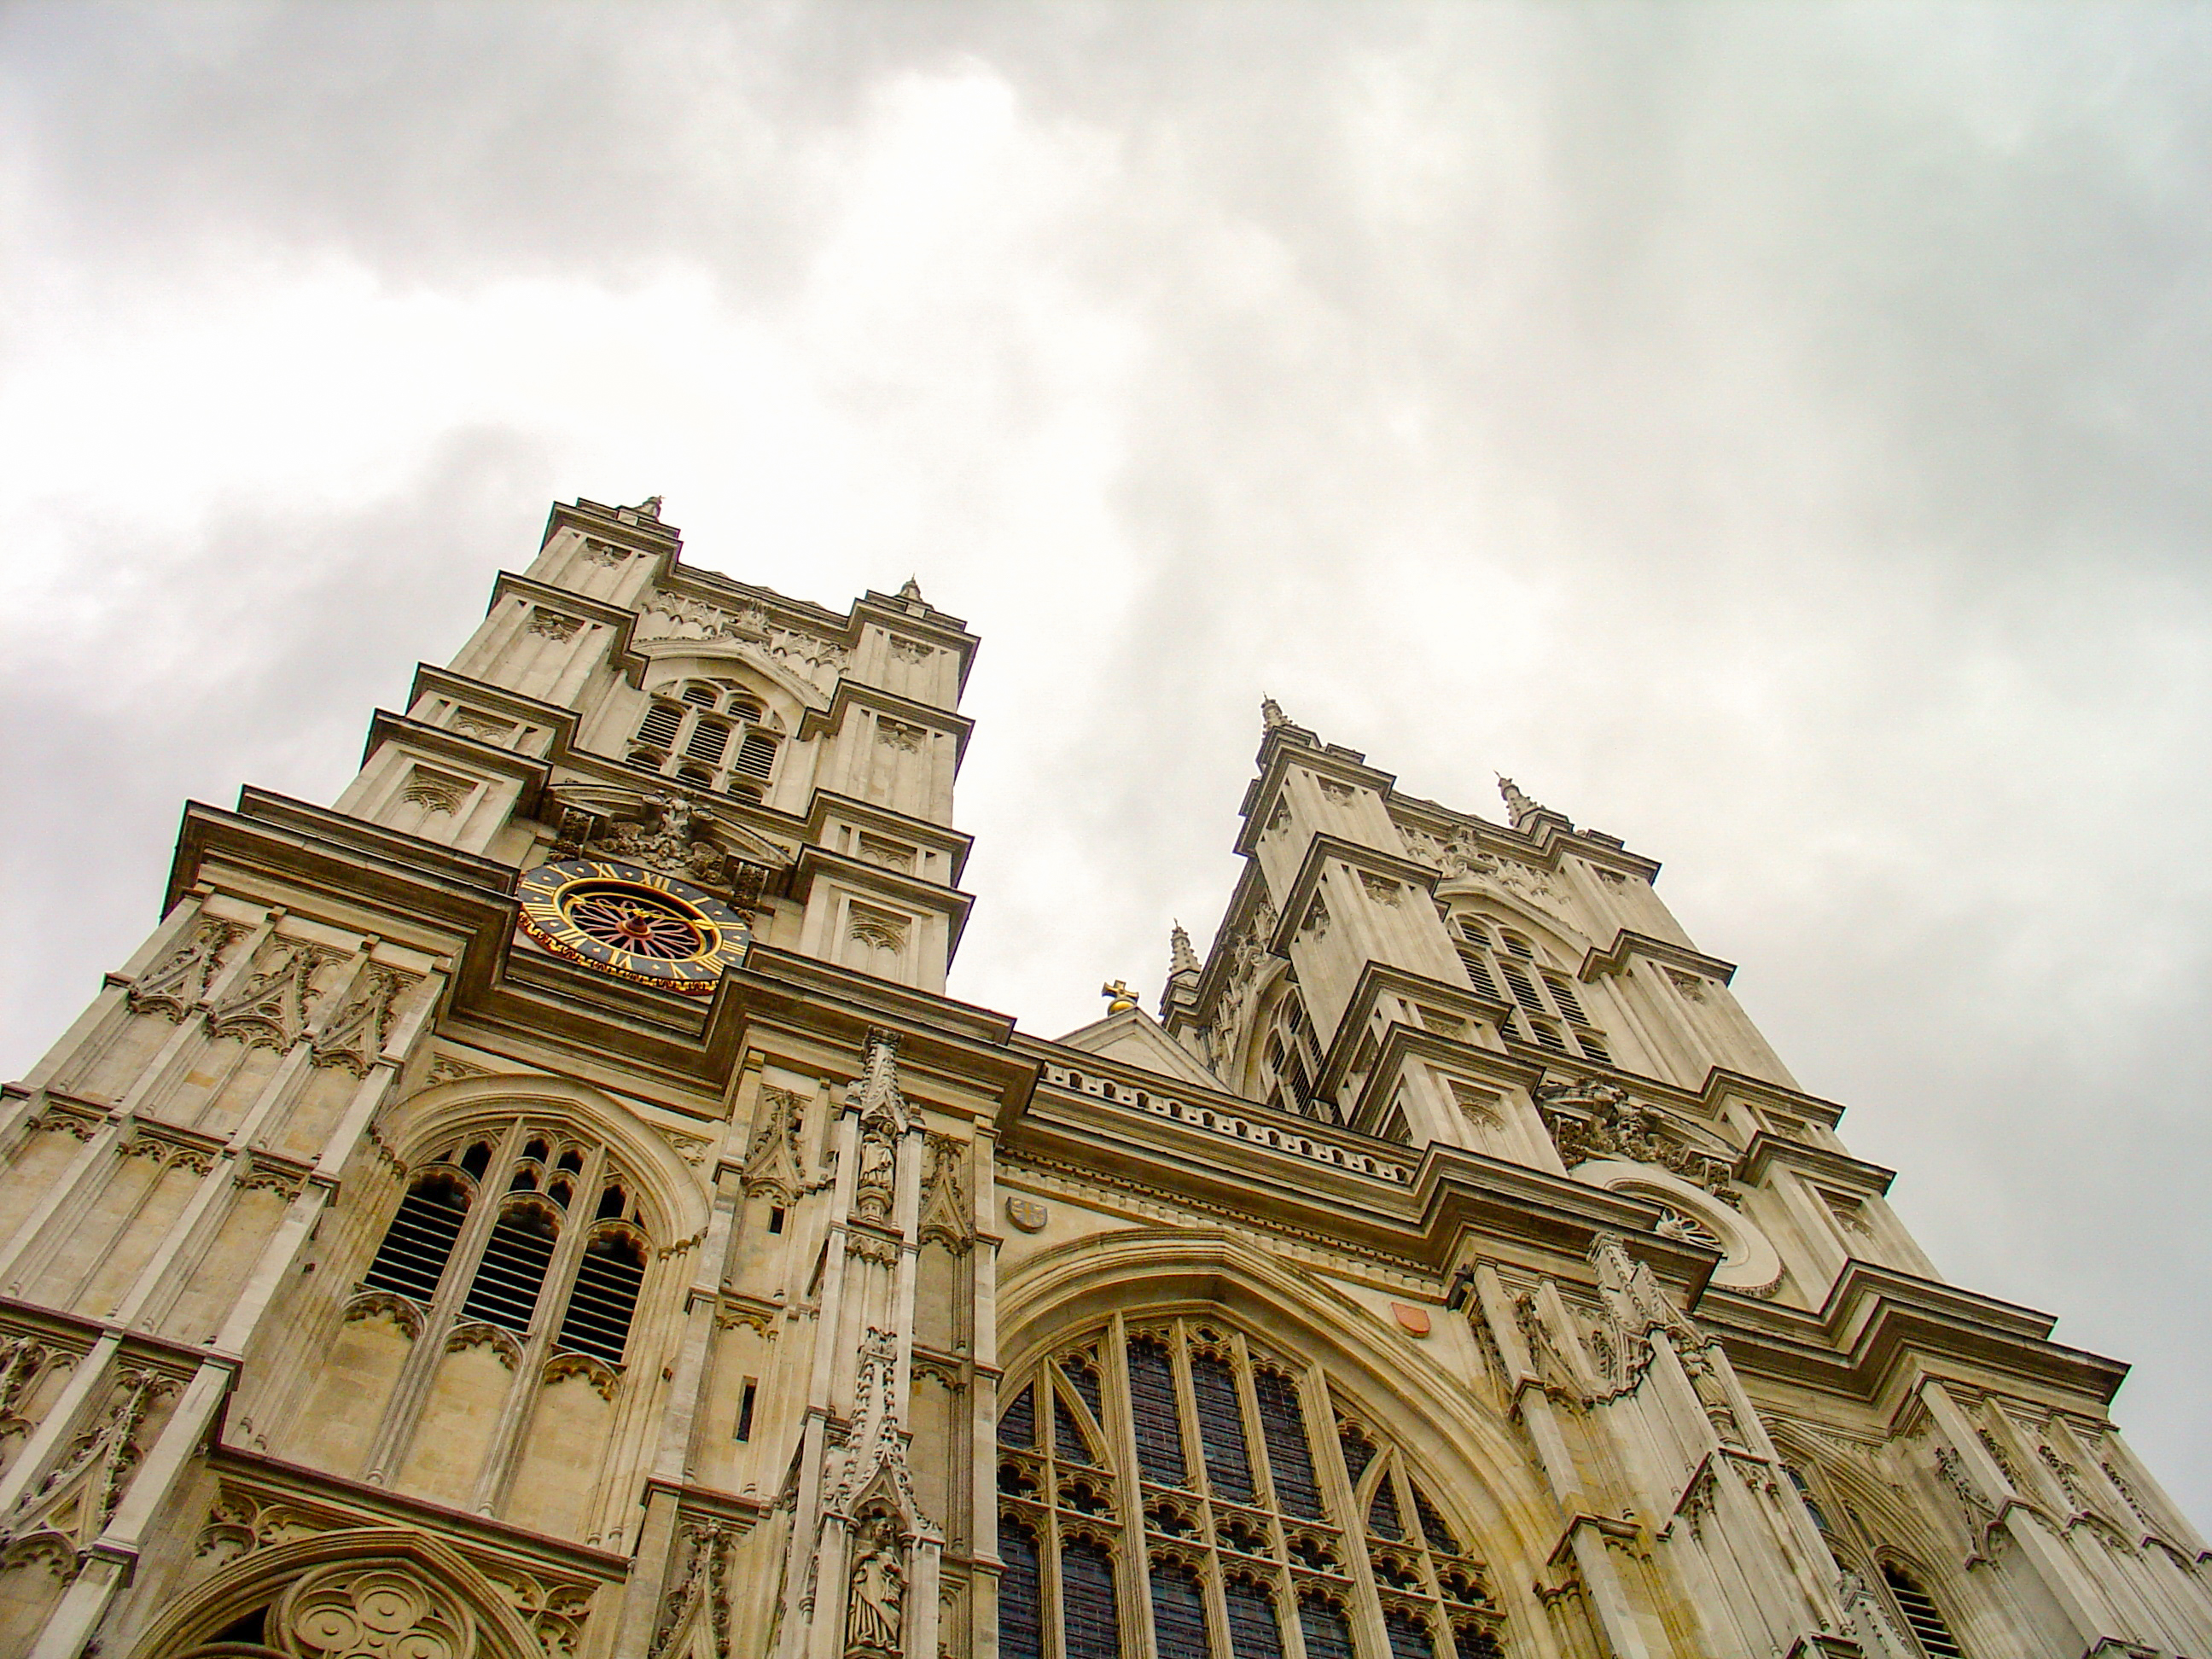 London Icons: 10 Interesting Facts About Westminster Abbey You May Not ...: londontopia.net/site-news/featured/london-icons-10-interesting...